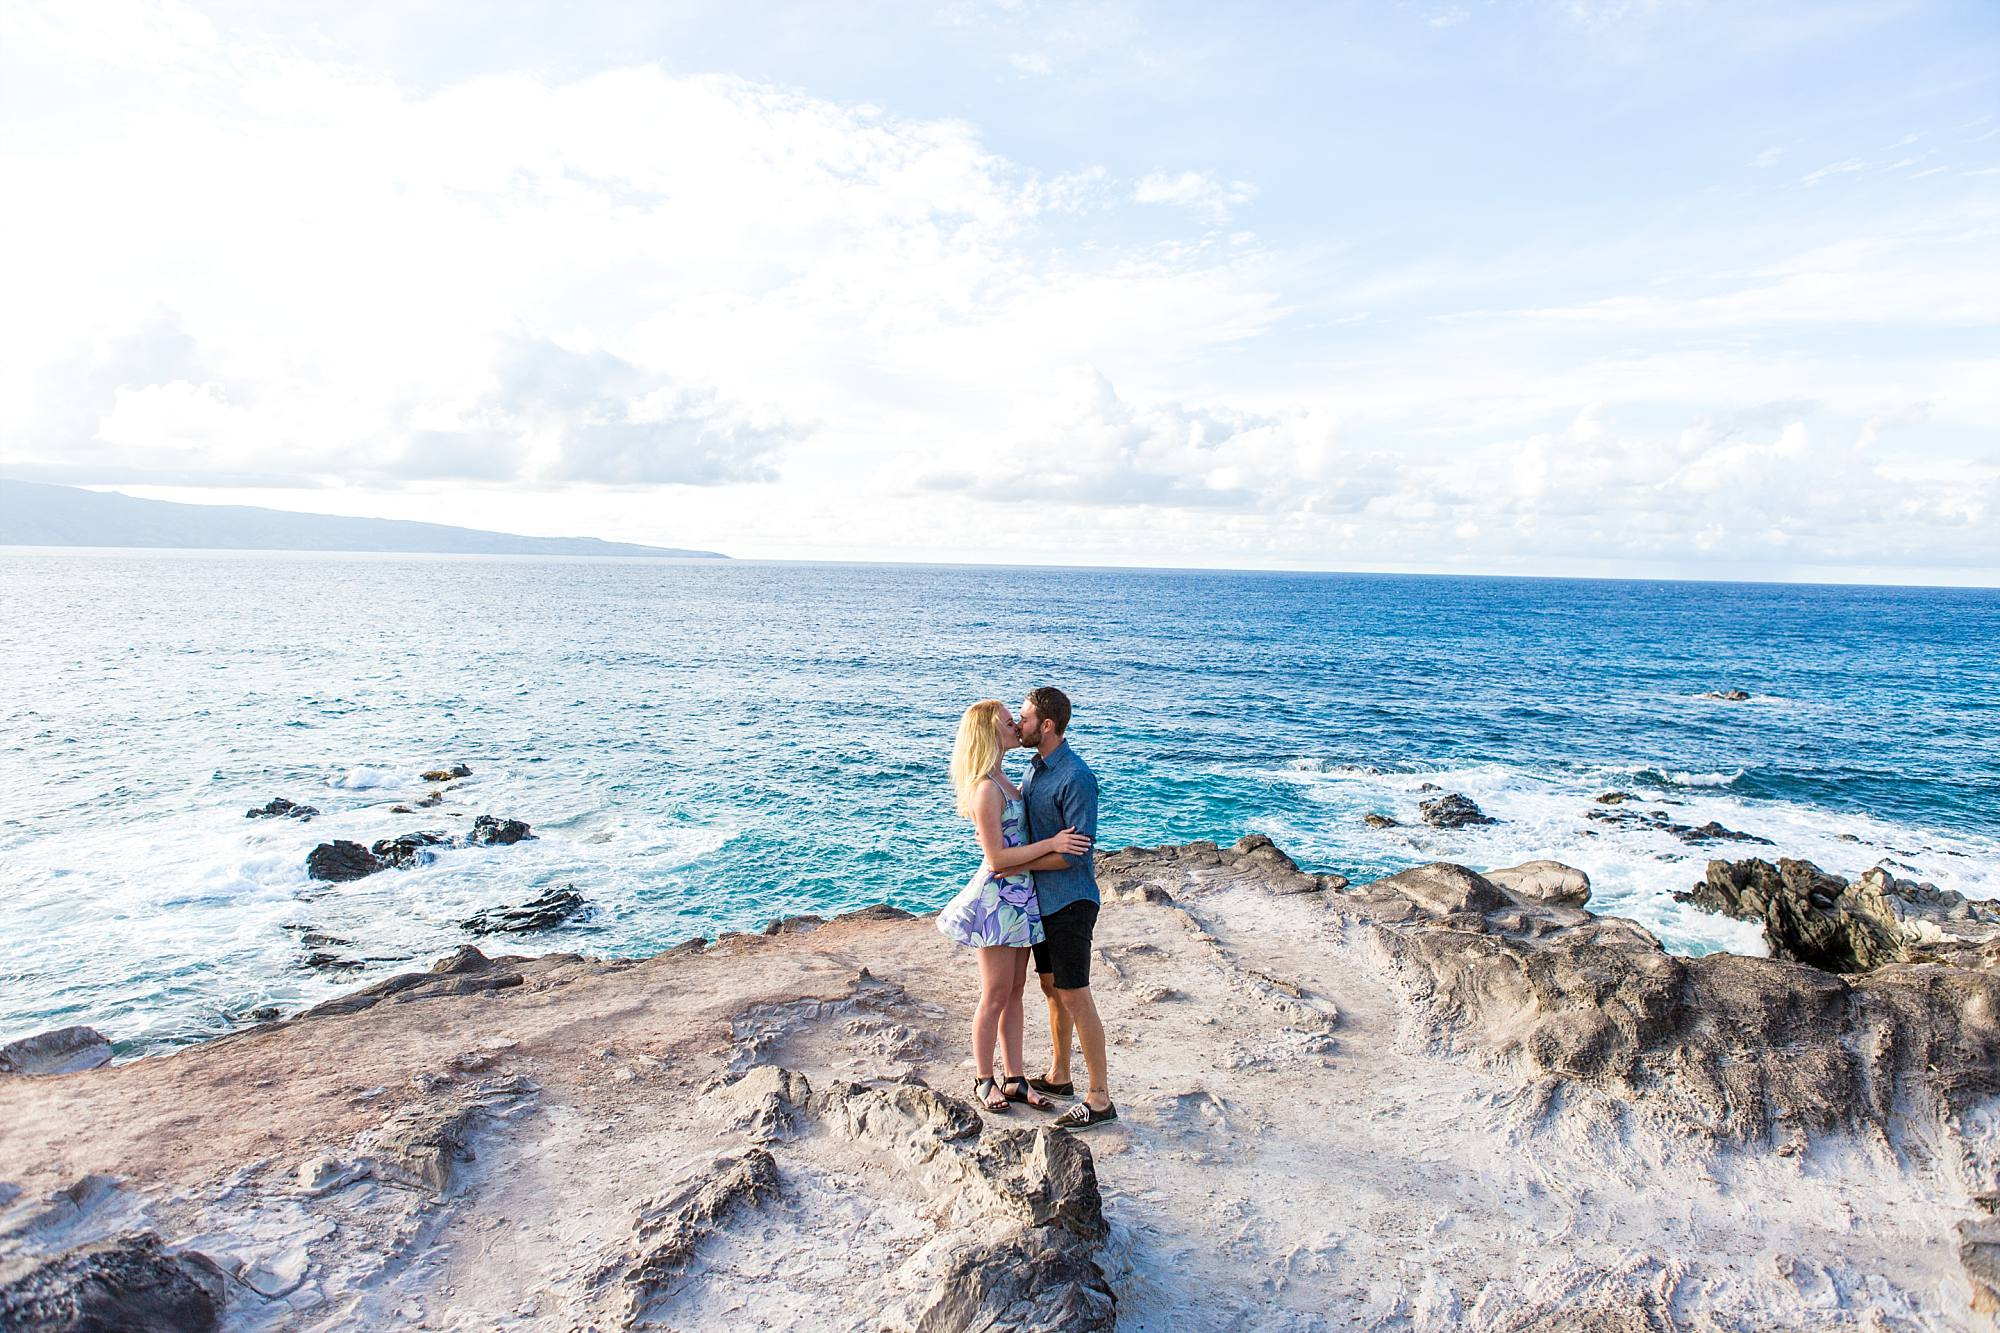 the bright blue water of Maui surrounding the couple standing and kissing on a cliff